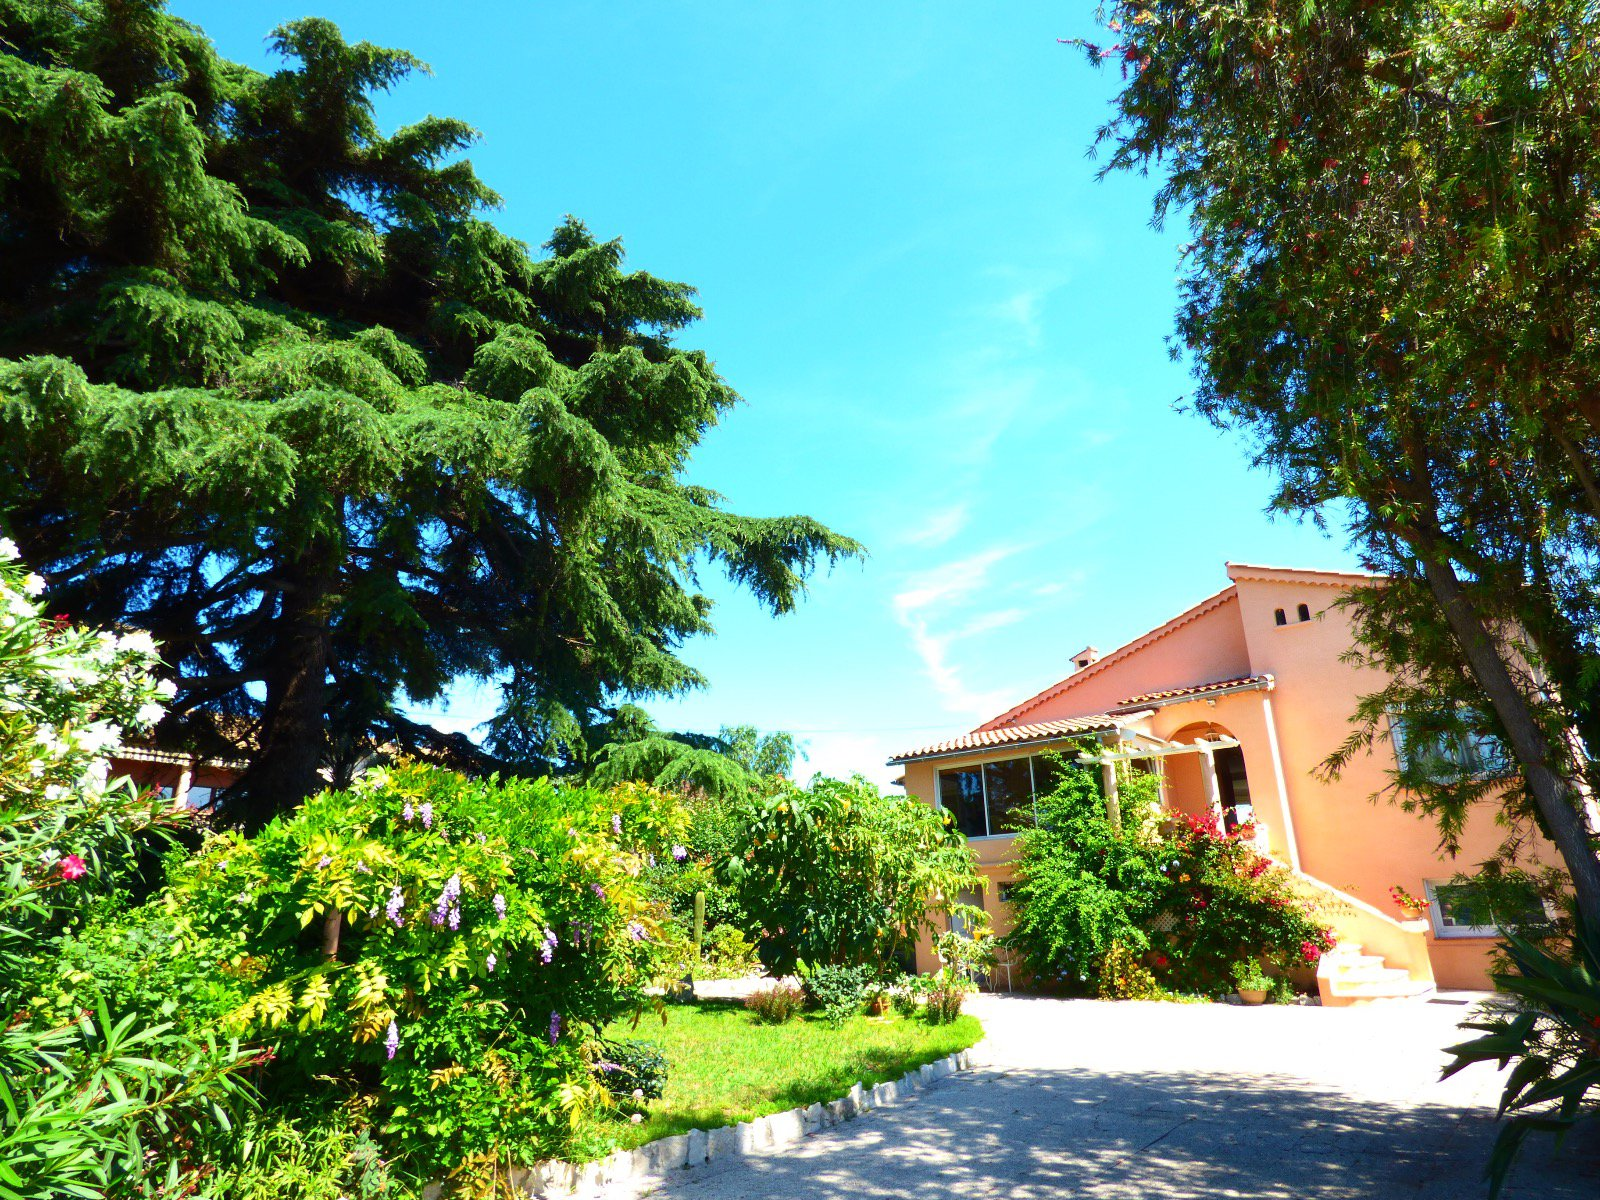 House for sale, sea view, quiet with panoramic views of the castle of Cagnes sur Mer